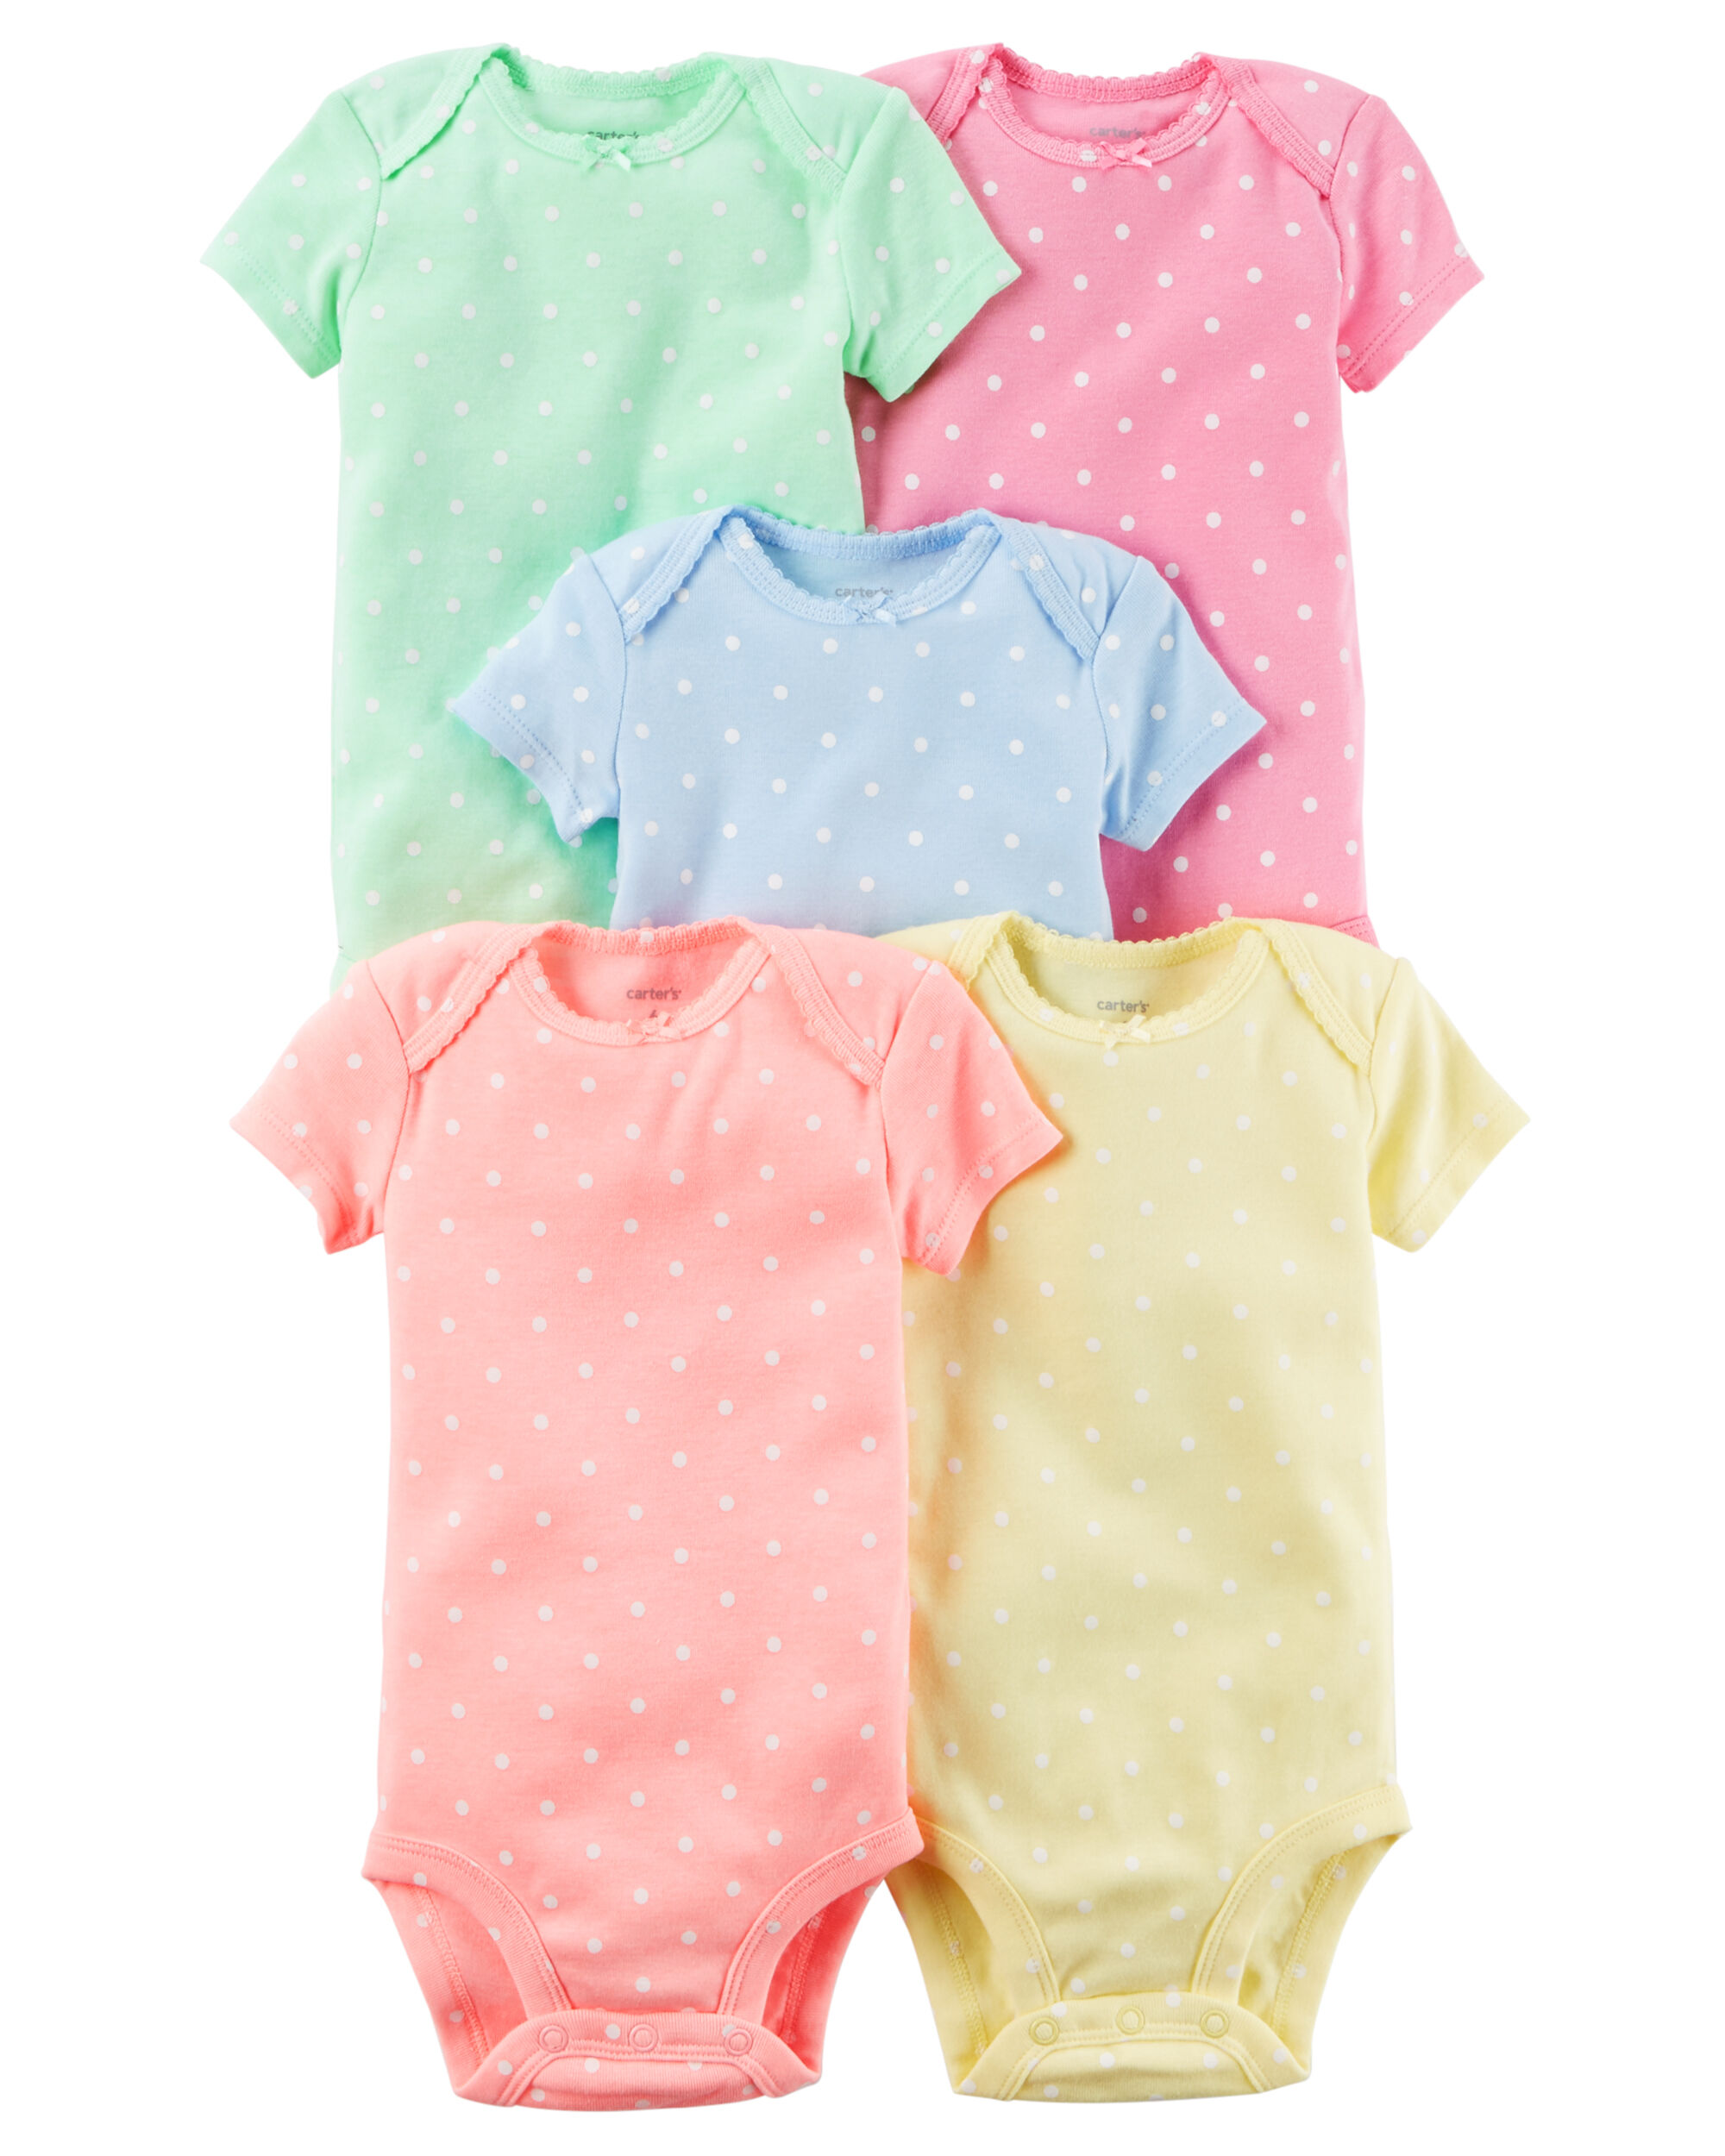 5 pack short sleeve bodysuits carters images nvjuhfo Image collections